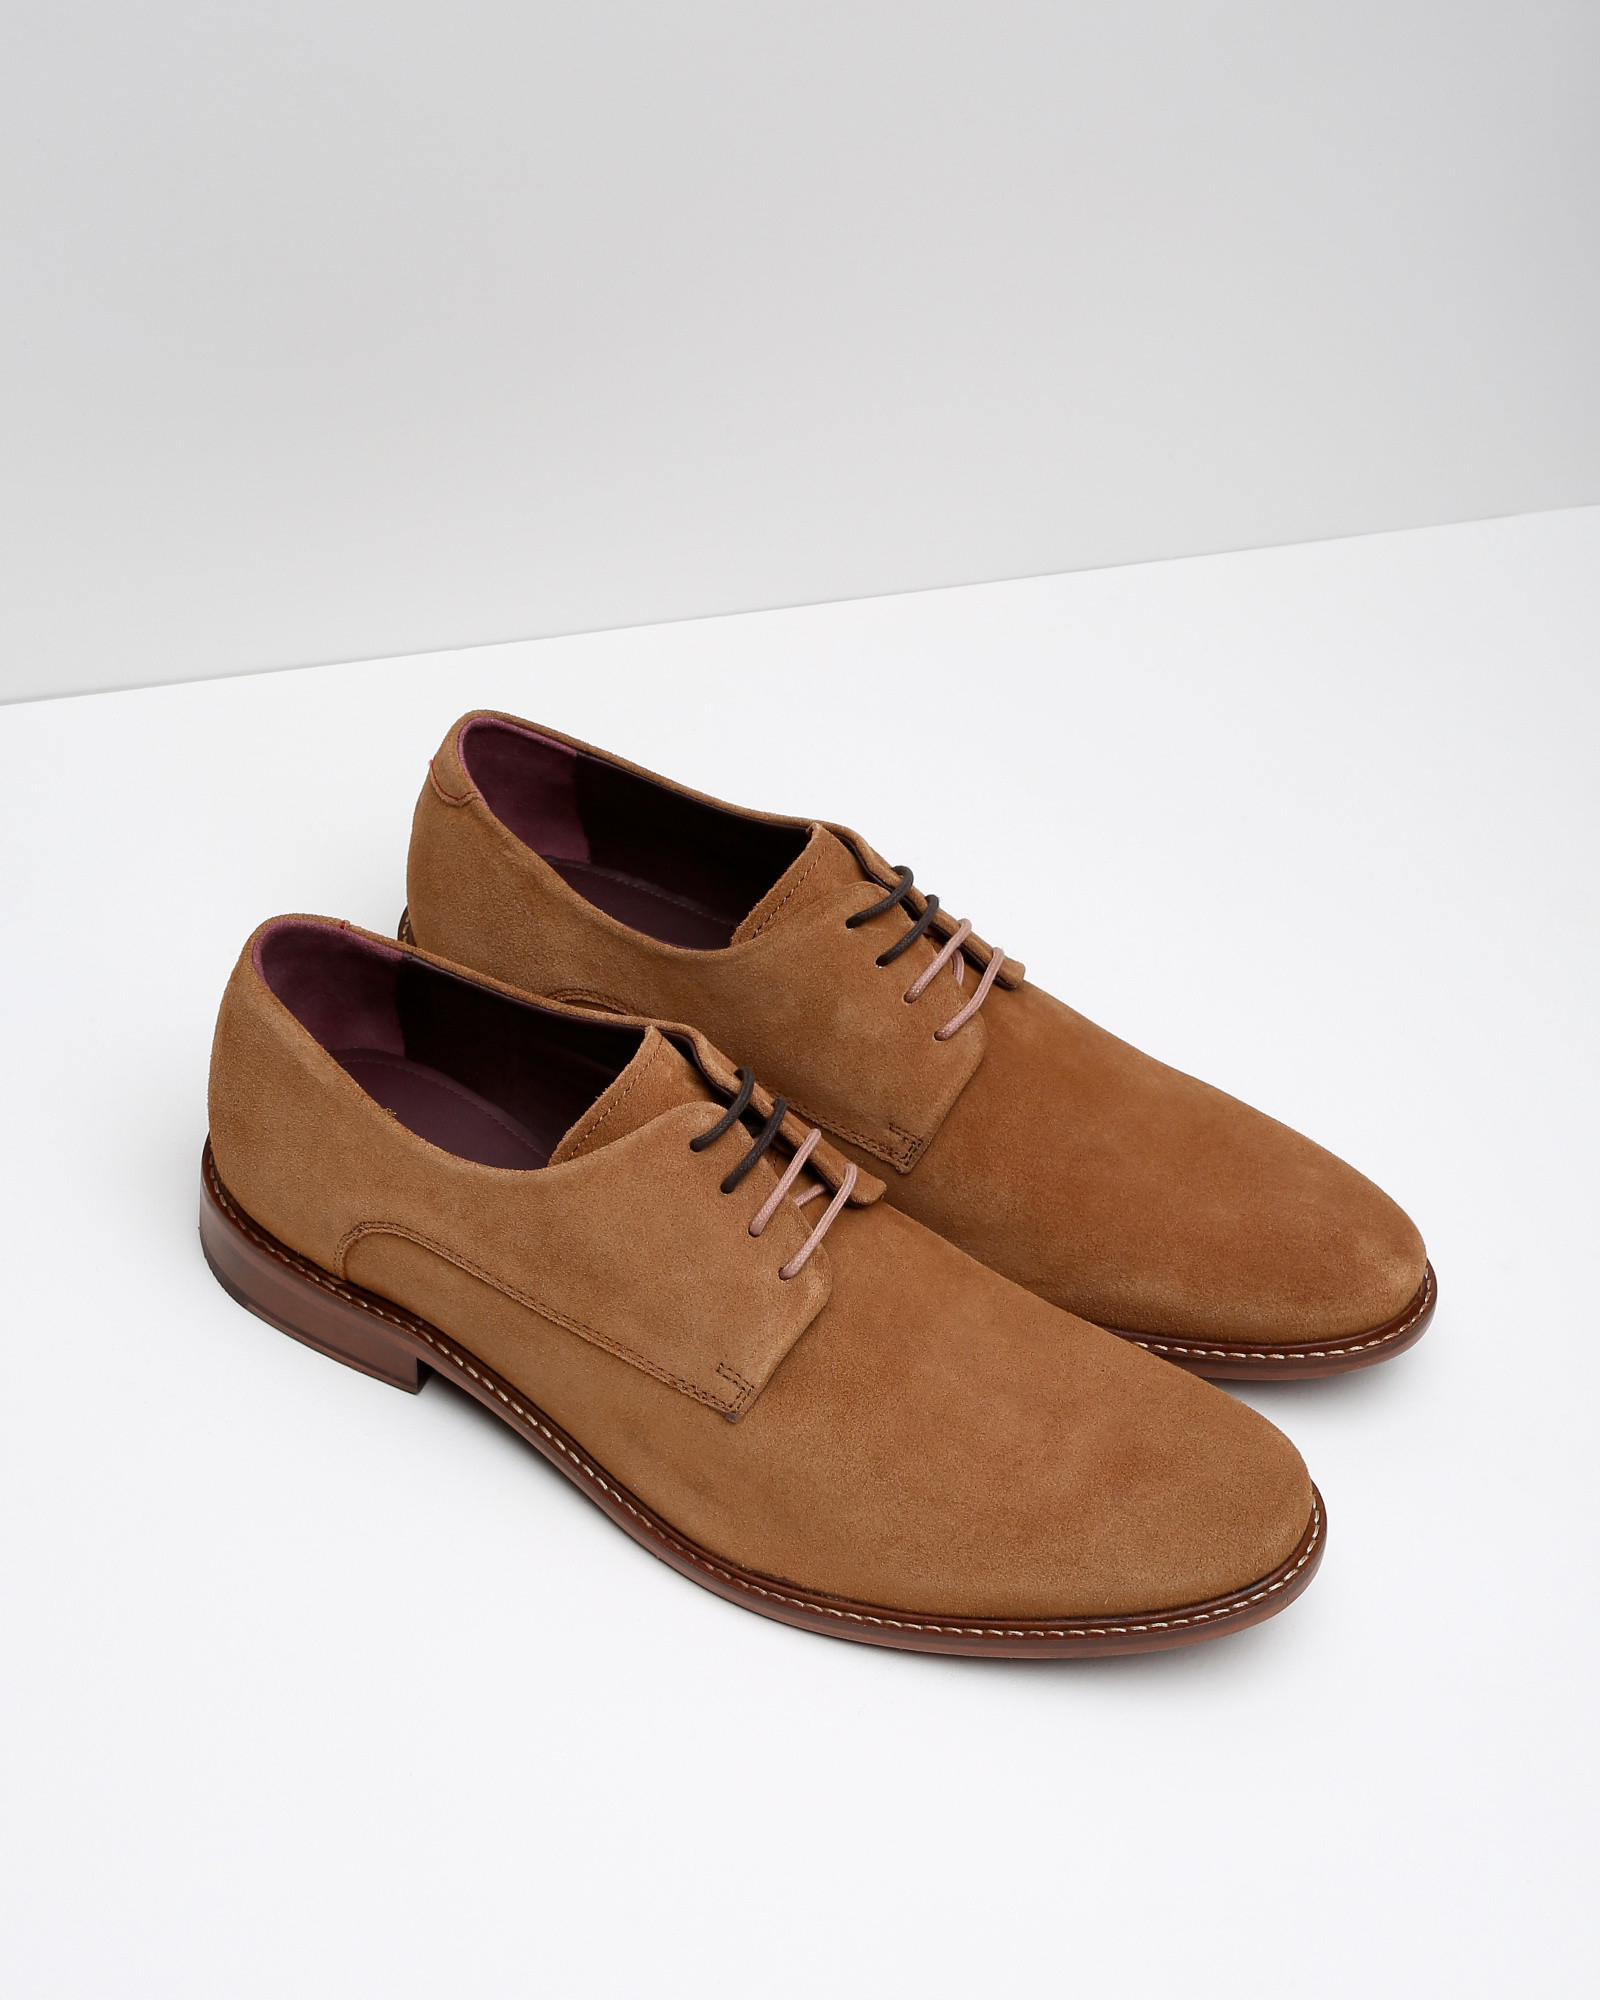 8f0d4897e Lyst - Ted Baker Classic Suede Derby Shoes in Brown for Men